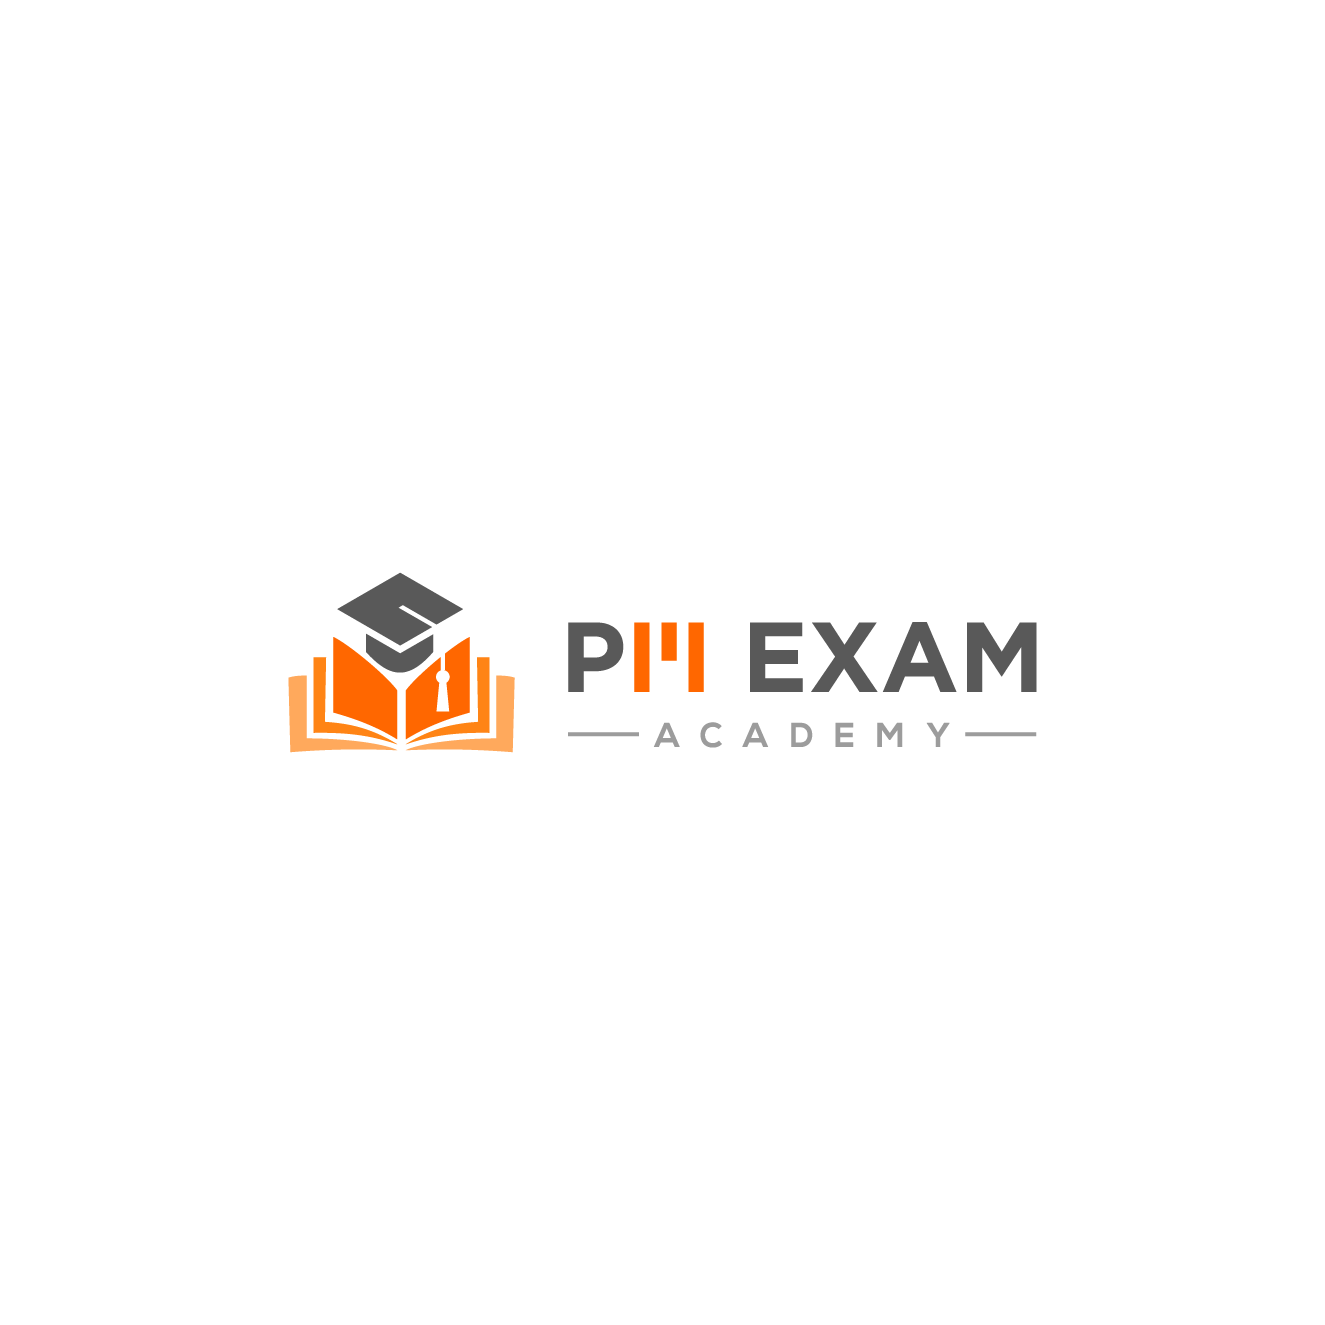 Fun yet professional logo for a certification exam prep site